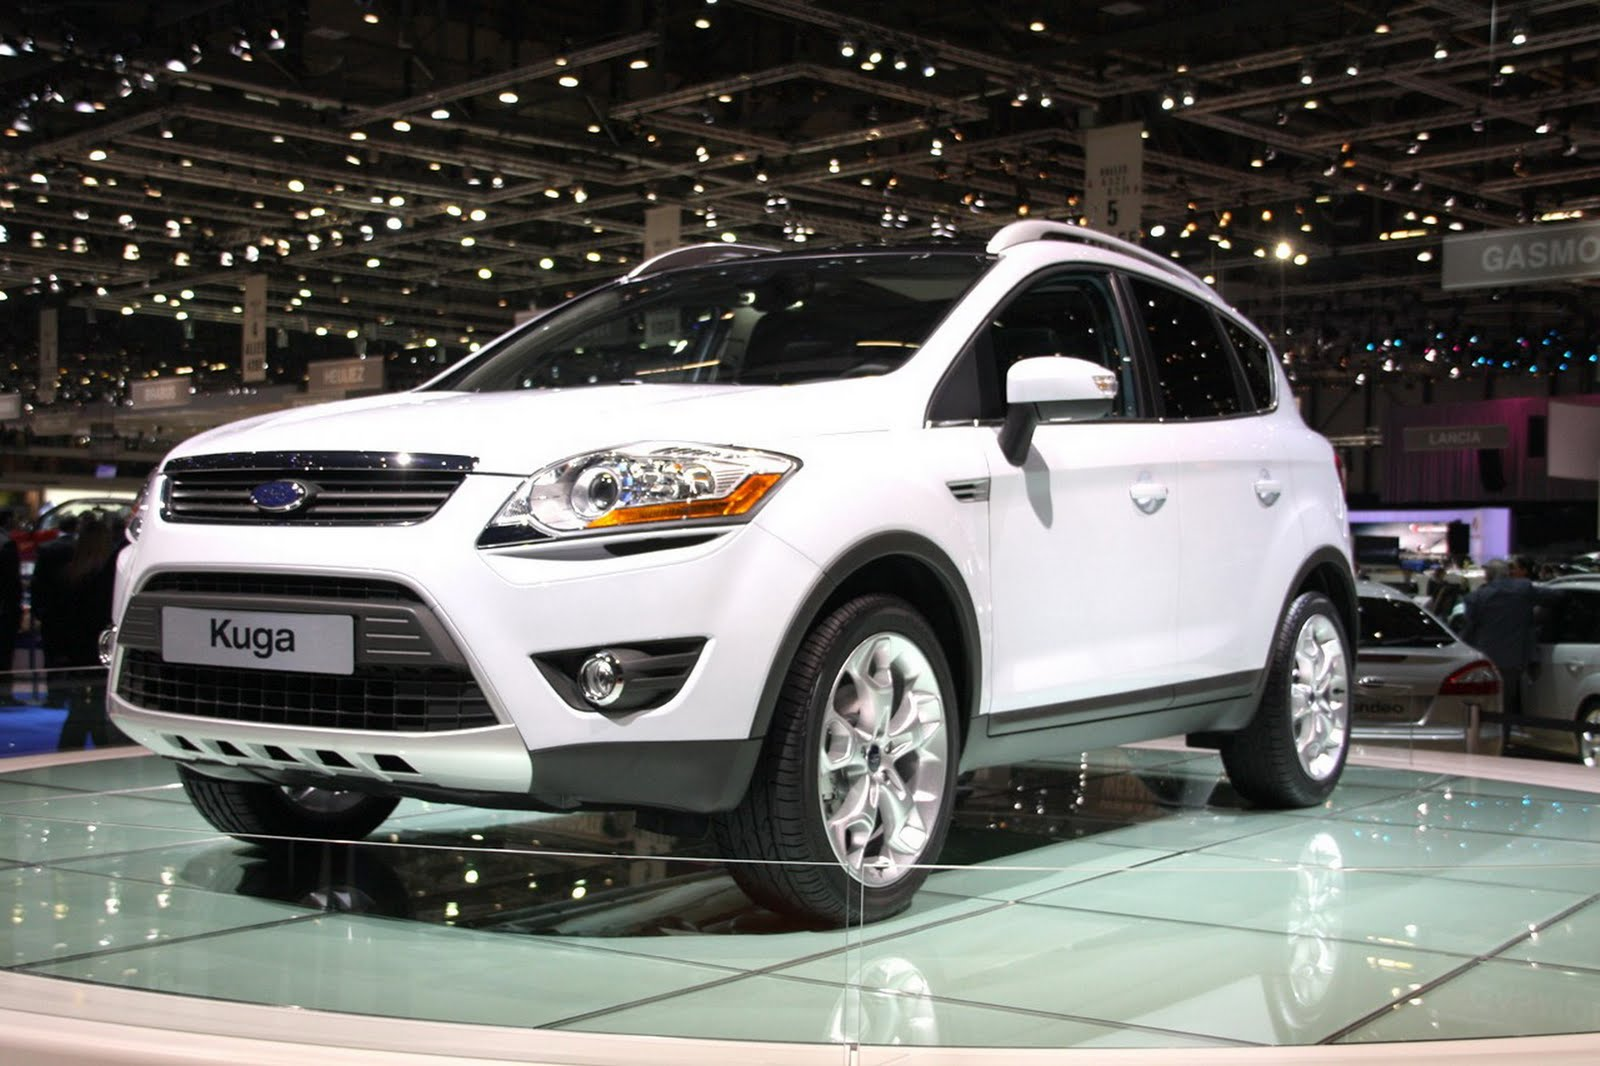 2012 Ford kuga features and price  Vivid Car